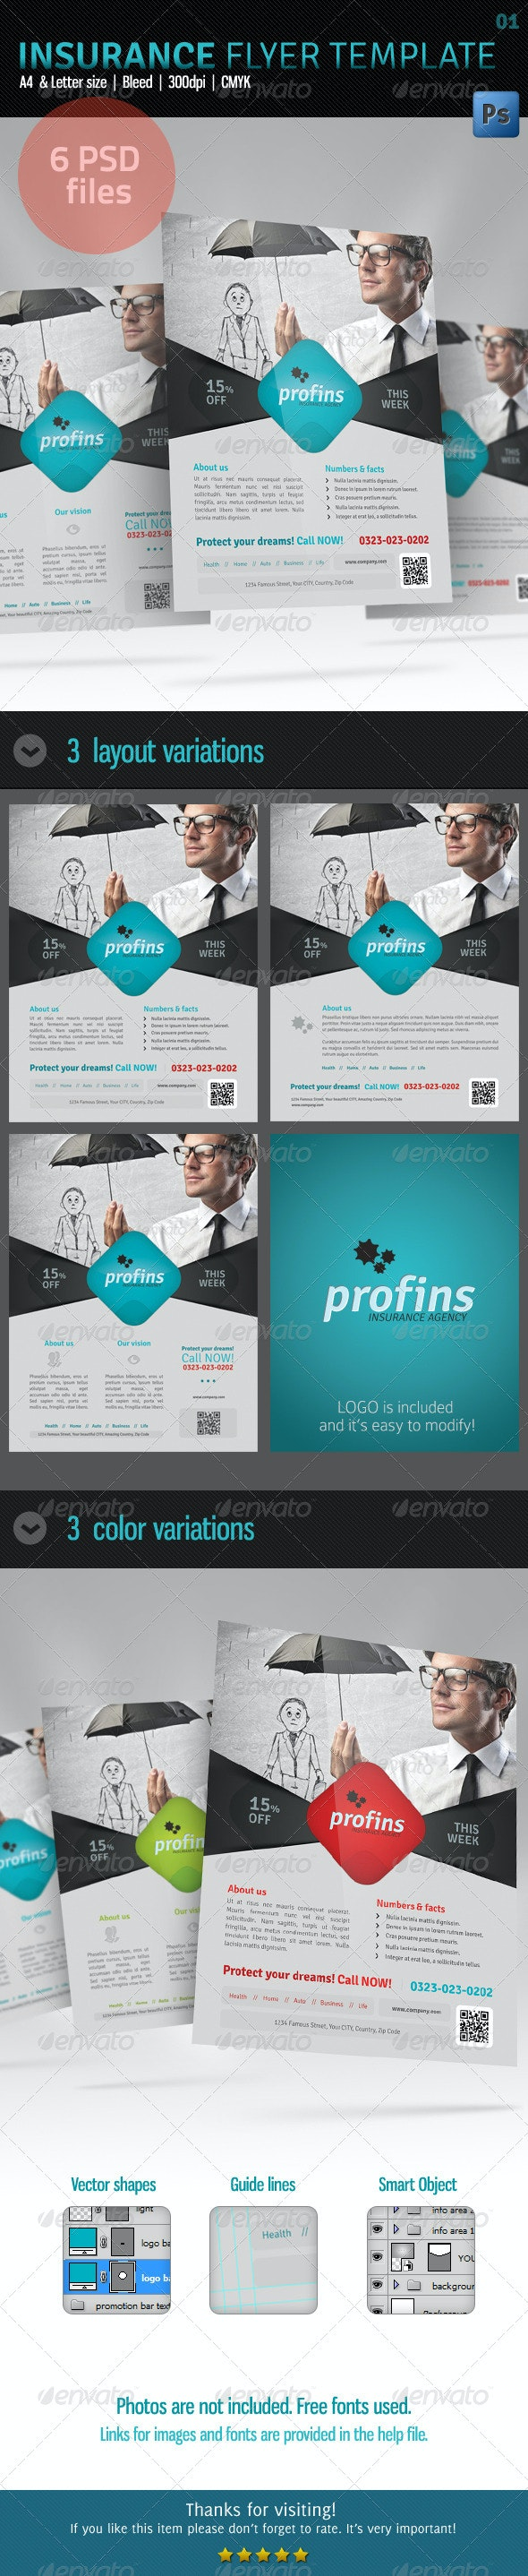 Insurance Flyer Template 01 - Corporate Flyers